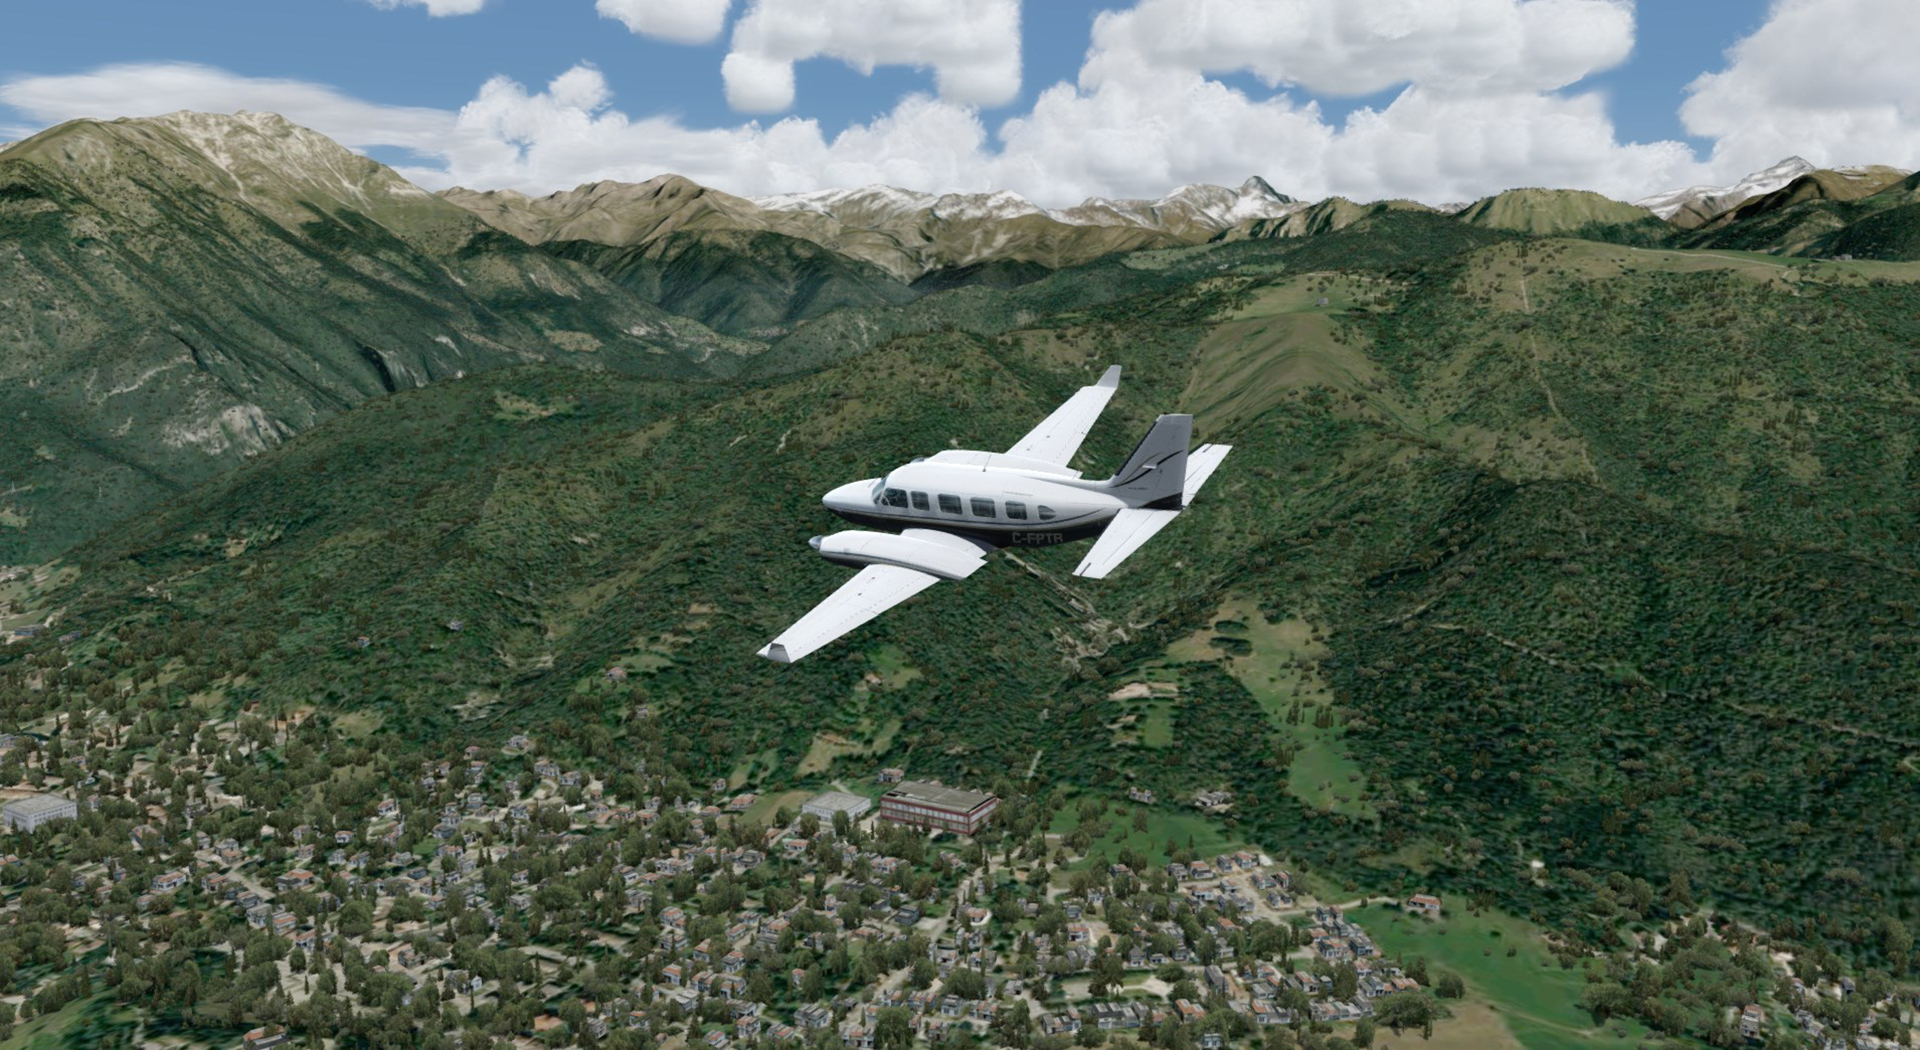 REALWORLD SCENERY - ITALY 3D ENVIRONMENT 2017 FSX P3D